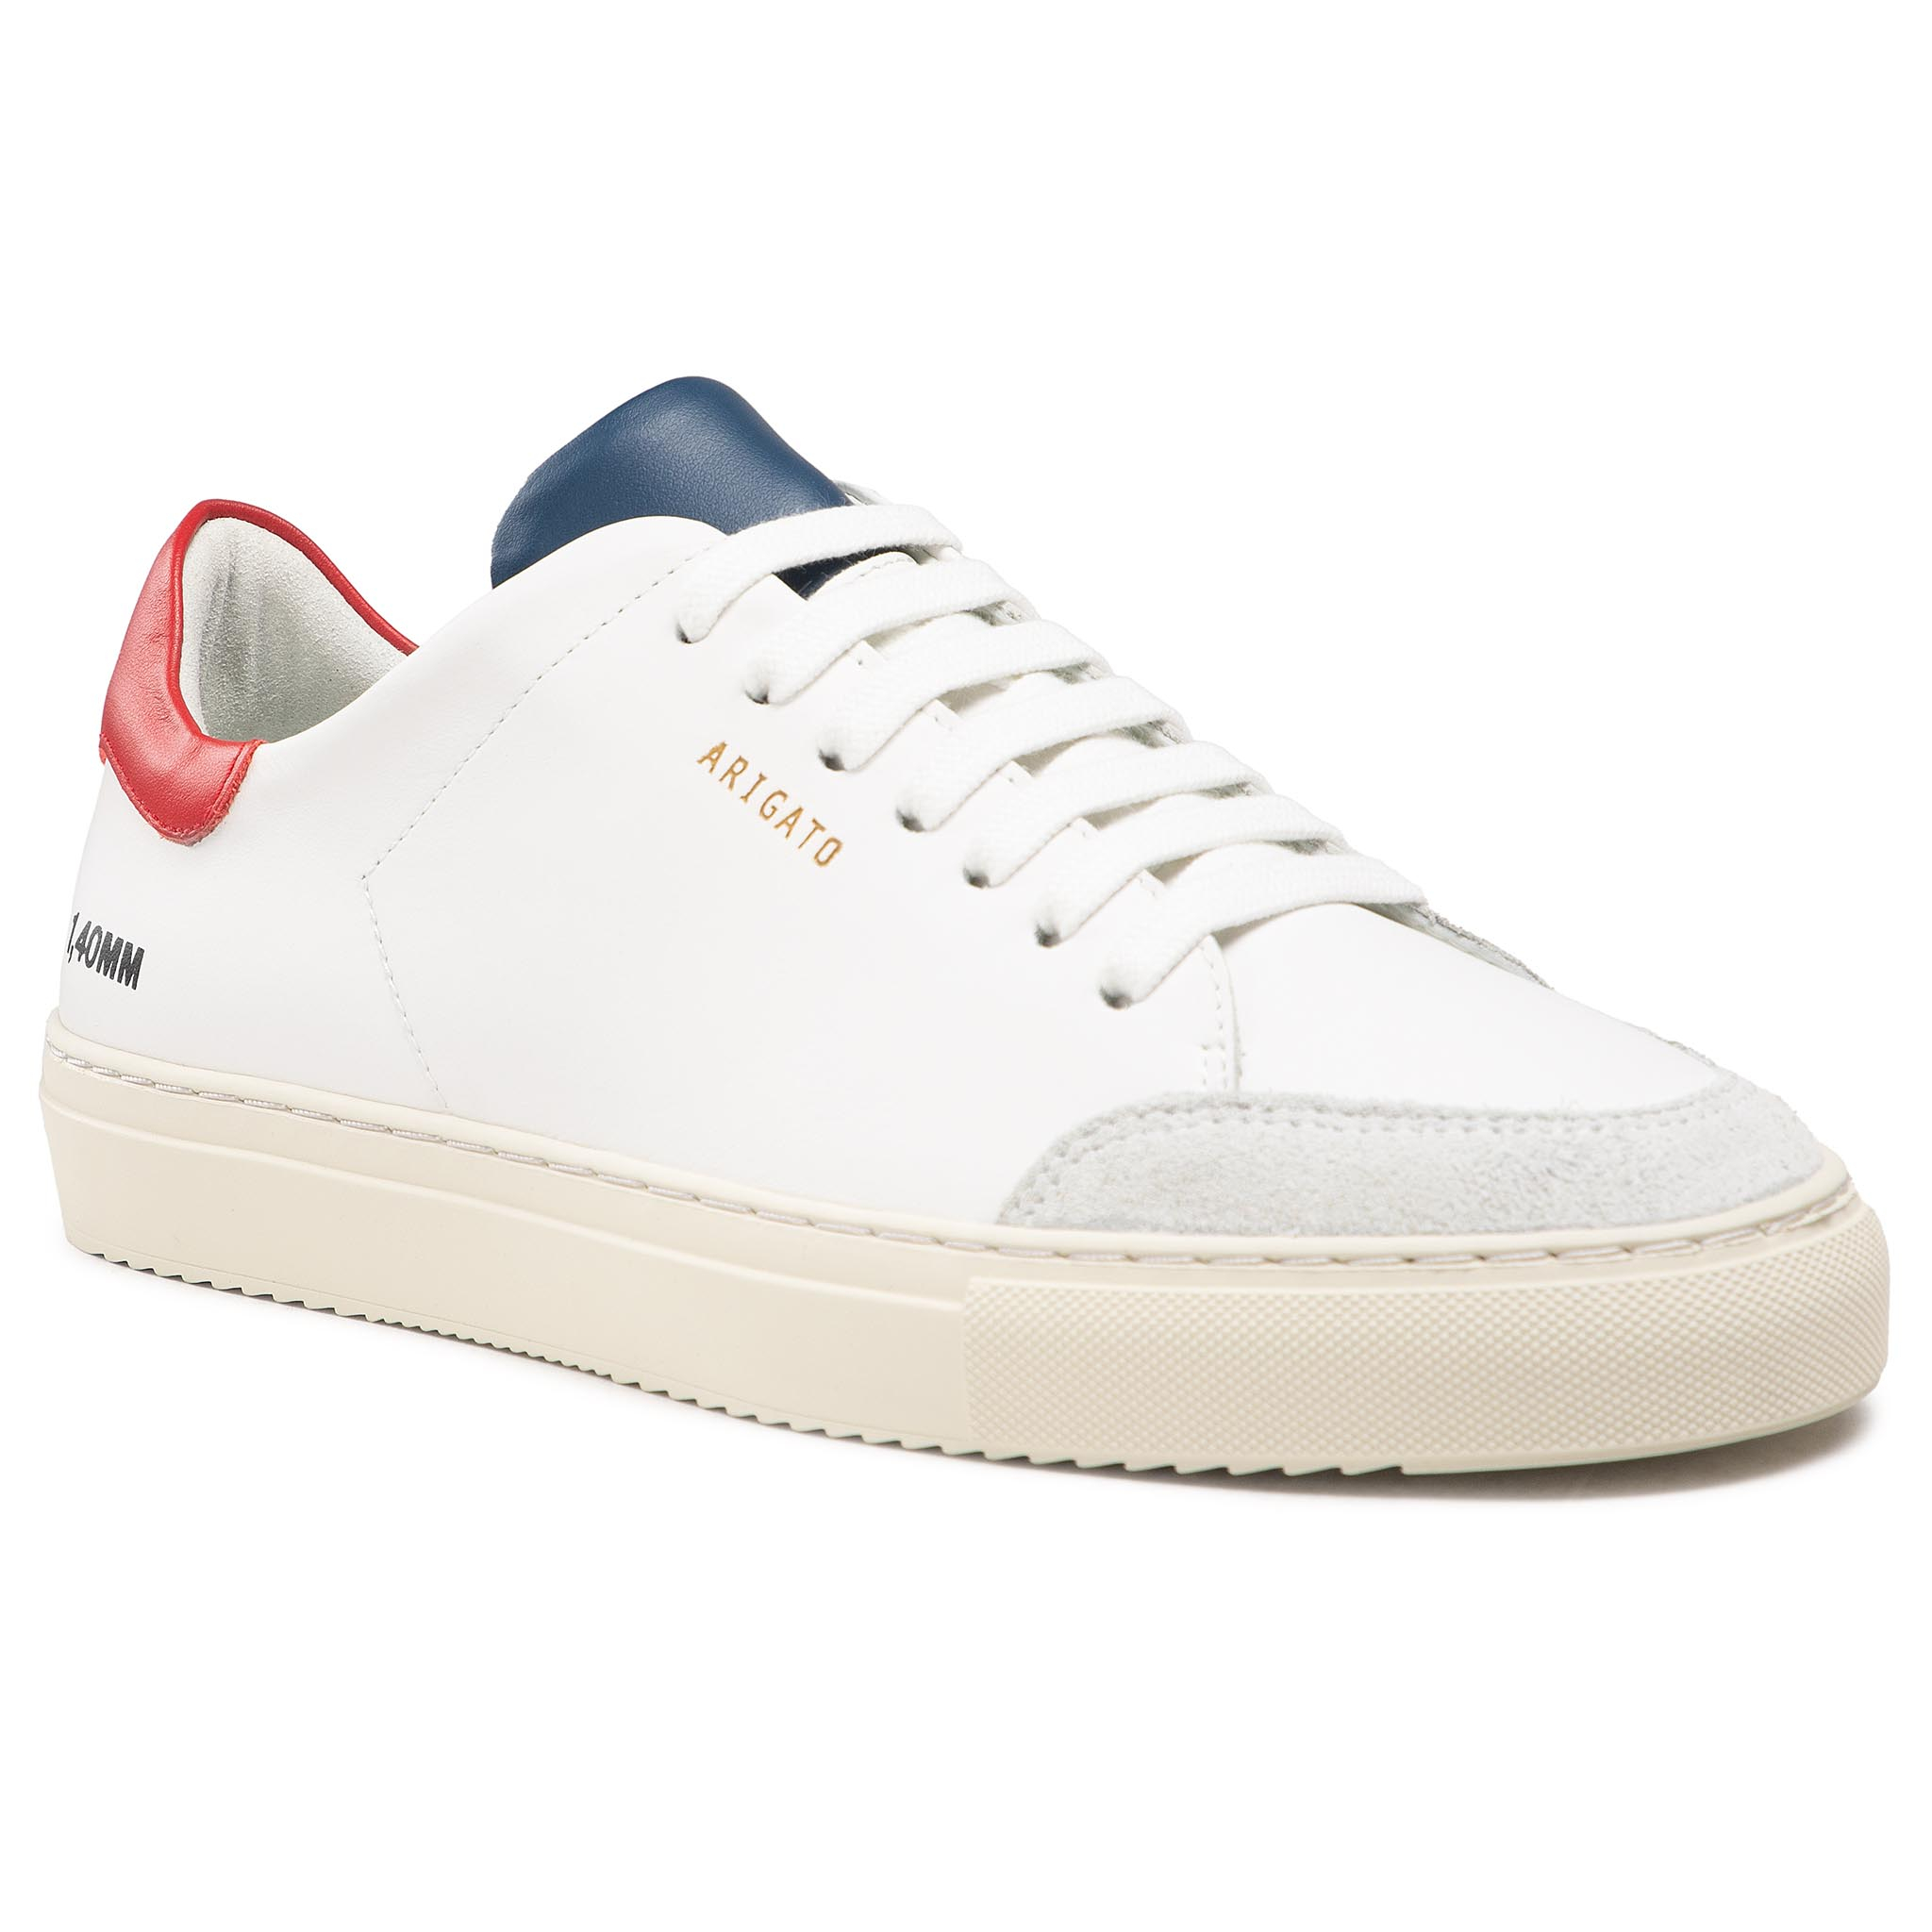 Sneakers AXEL ARIGATO - Clean 90 28623 White/Red/Blue